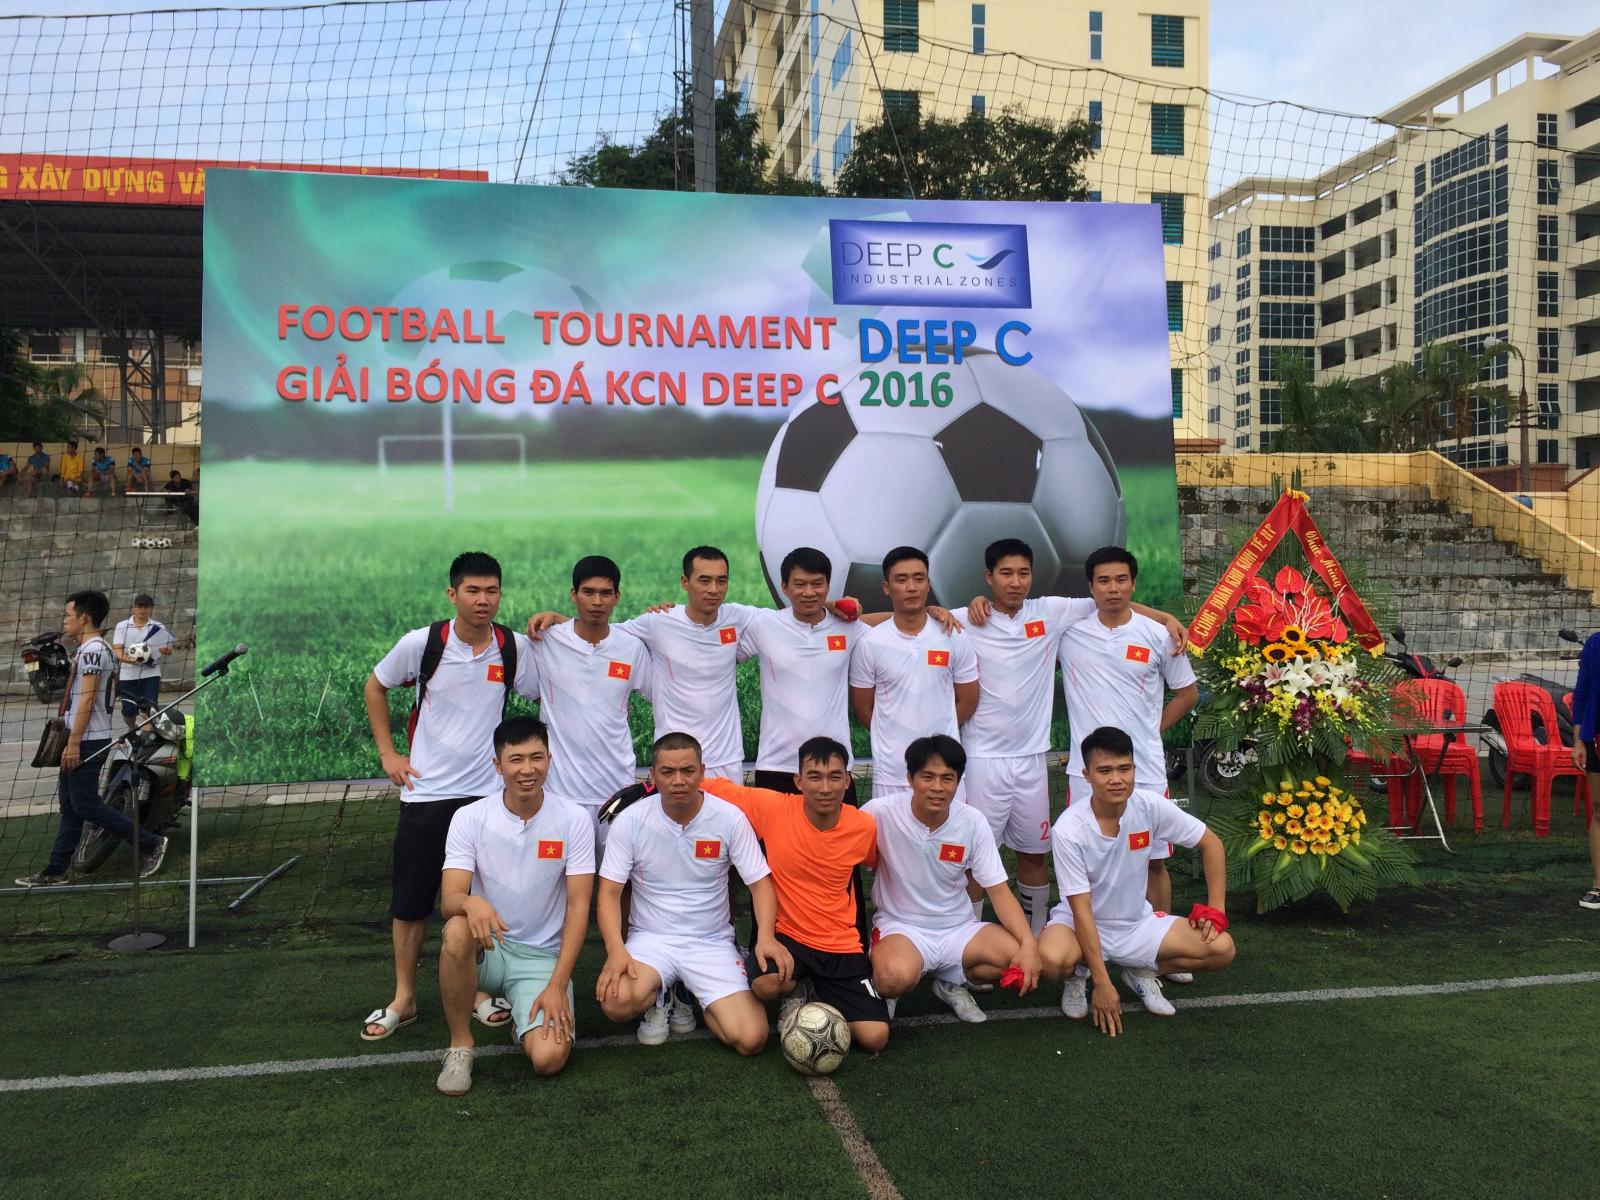 Football Tournament